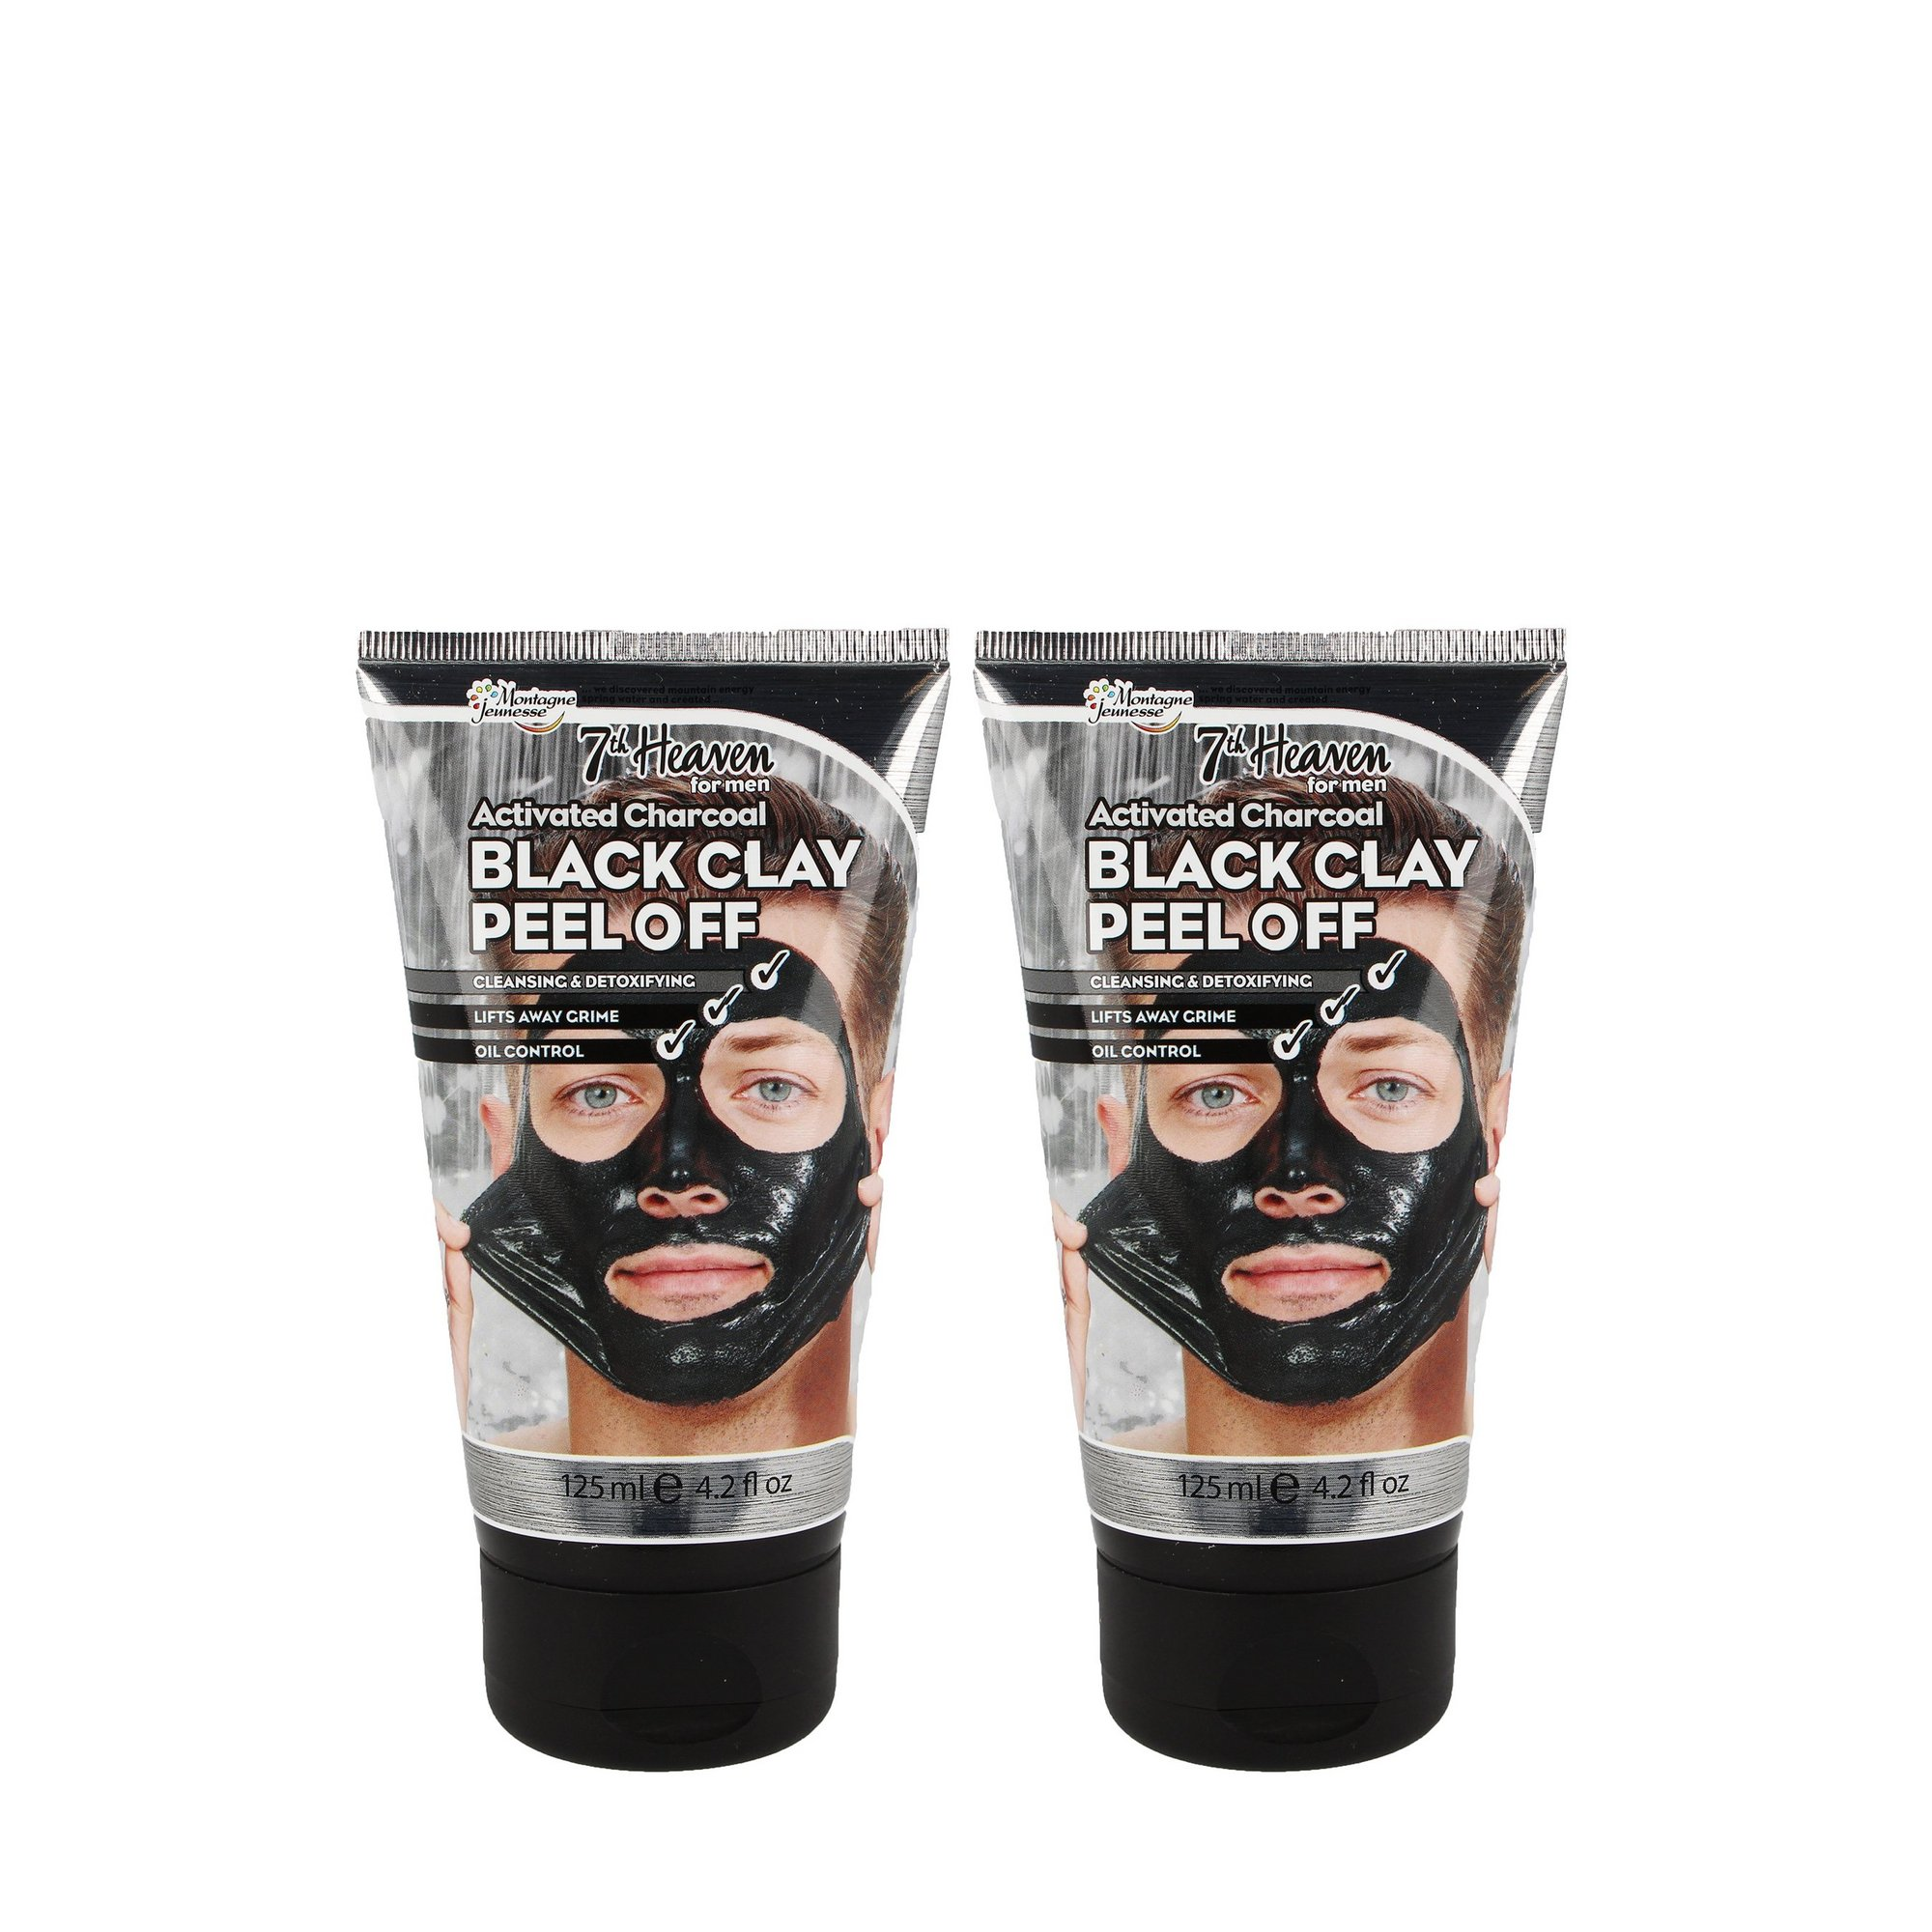 Image of Montagne Jeunesse Charcoal Clay Peel off Mask for Men